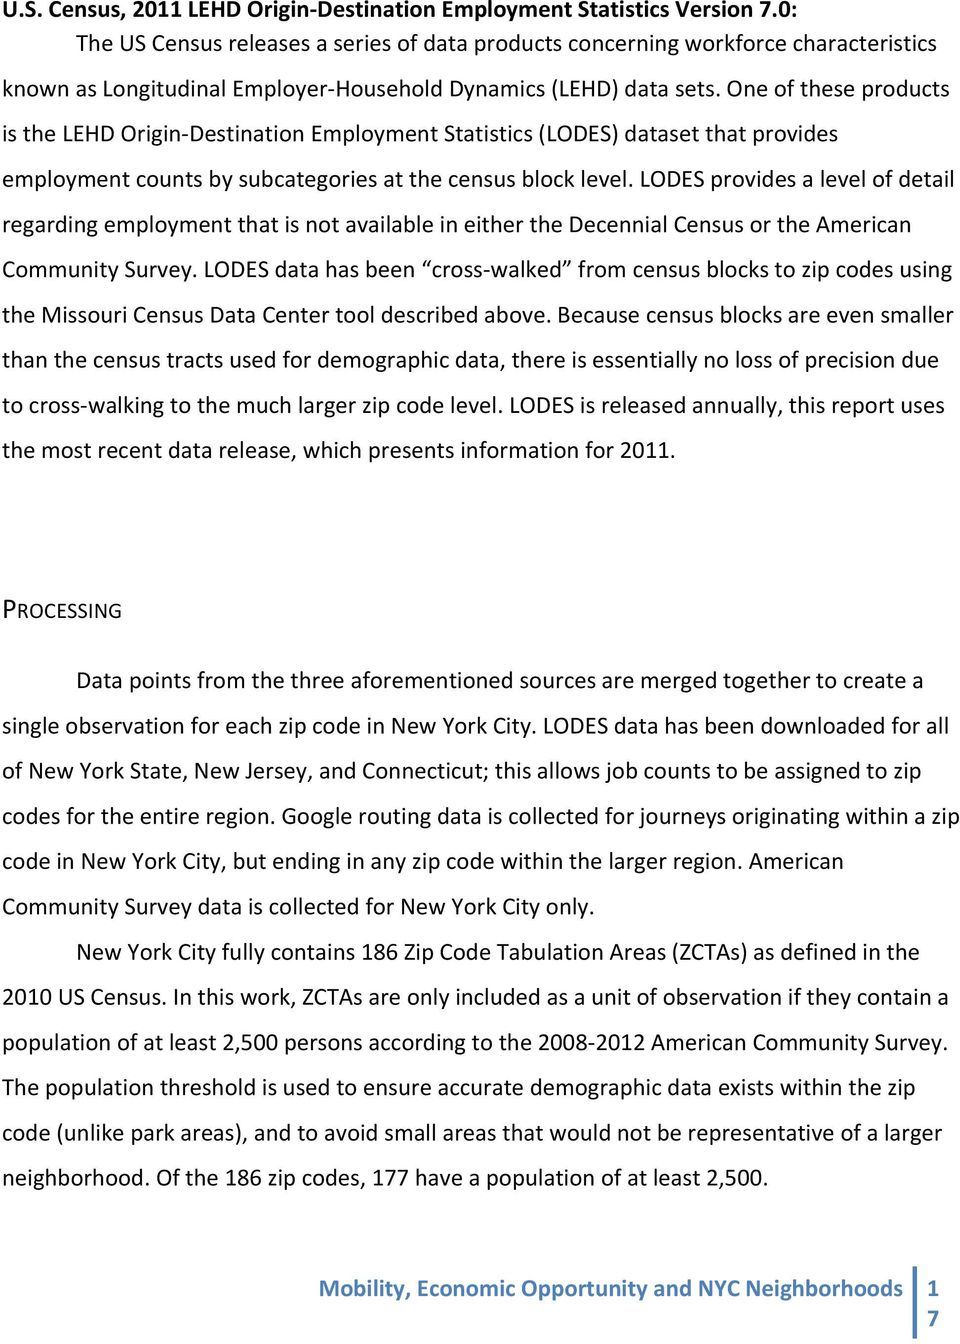 One of these products is the LEHD Origin- Destination Employment Statistics (LODES) dataset that provides employment counts by subcategories at the census block level.